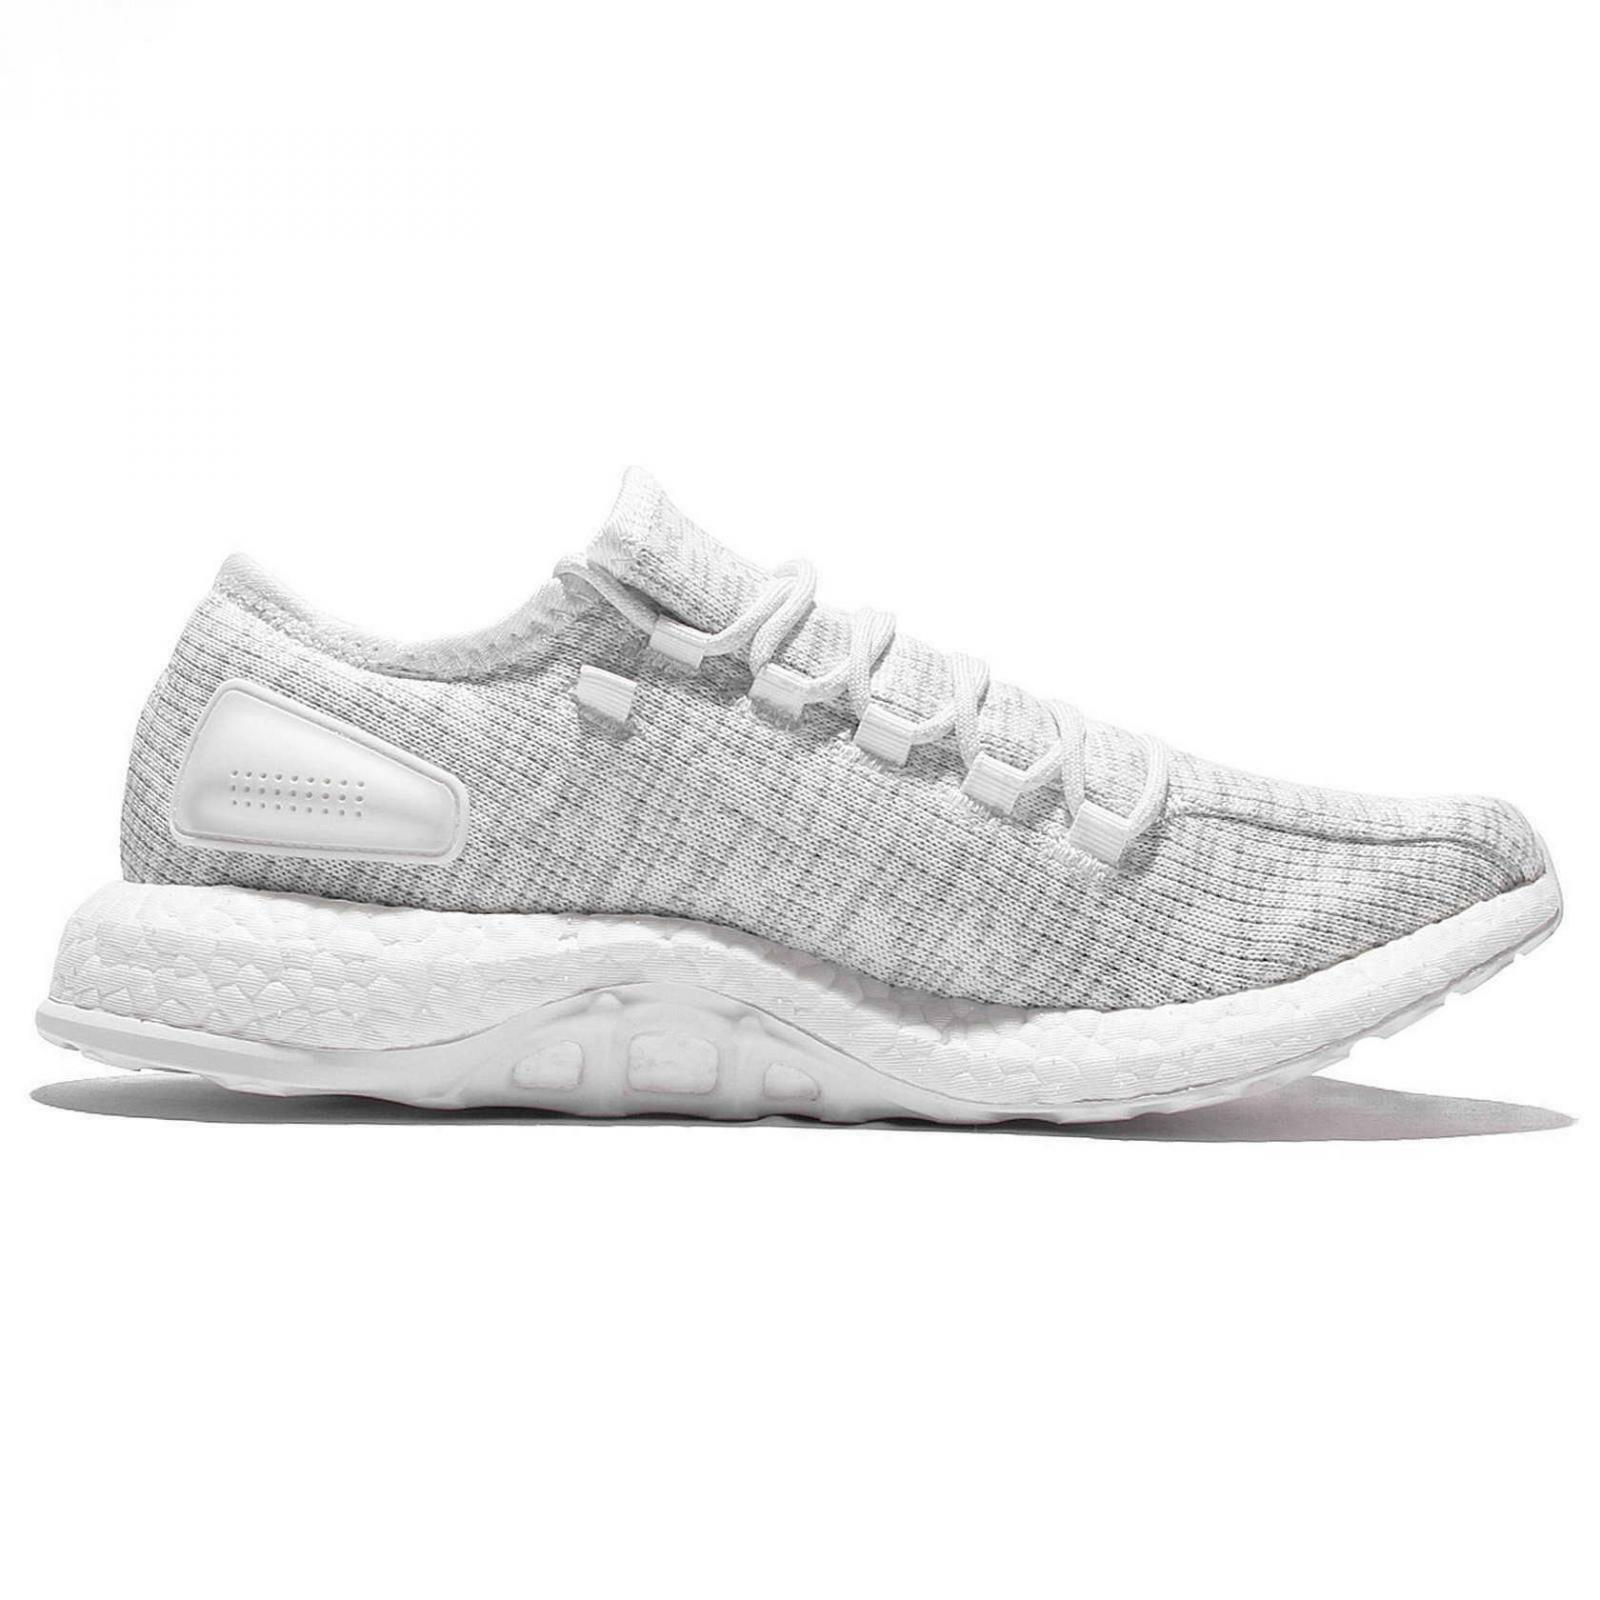 hommes ADIDAS PUREBOOST blanc Gris Running Trainers BA8893